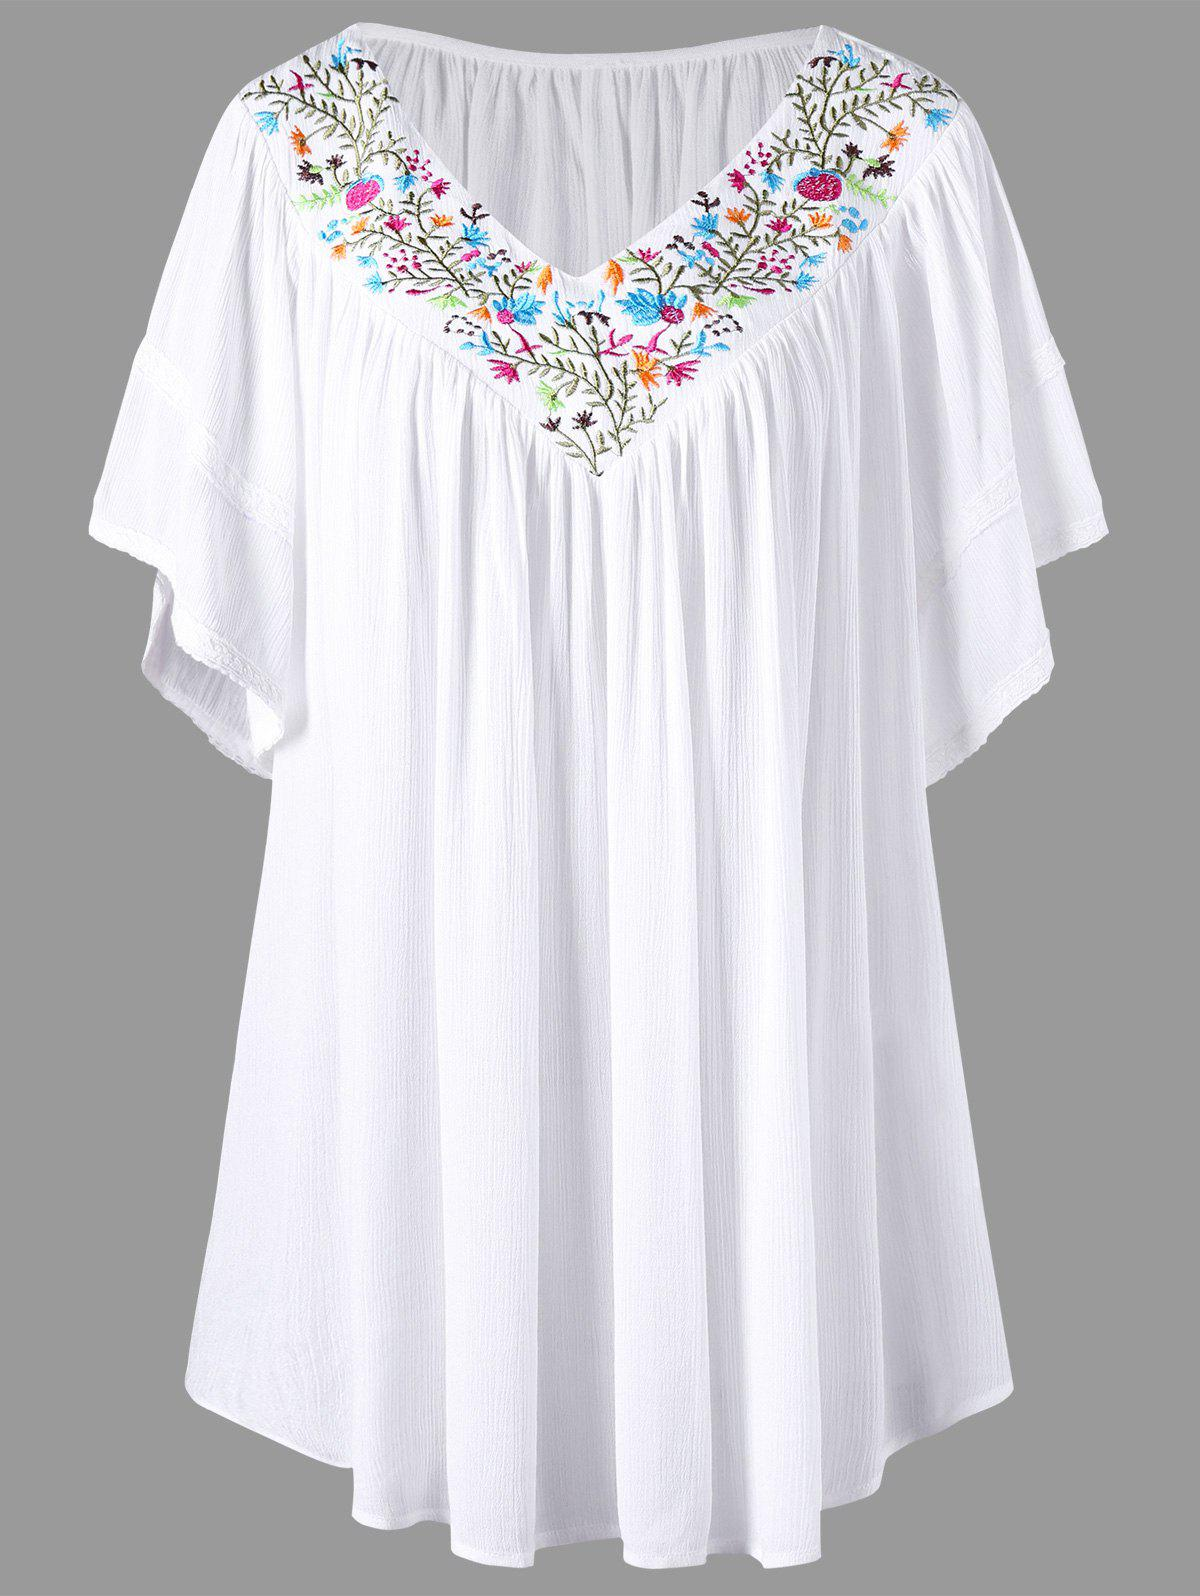 Embroidery V Neck Plus Size BlouseWOMEN<br><br>Size: 3XL; Color: WHITE; Material: Rayon,Spandex; Shirt Length: Long; Sleeve Length: Short; Collar: V-Neck; Style: Casual; Season: Summer; Pattern Type: Plant; Weight: 0.2600kg; Package Contents: 1 x Blouse;